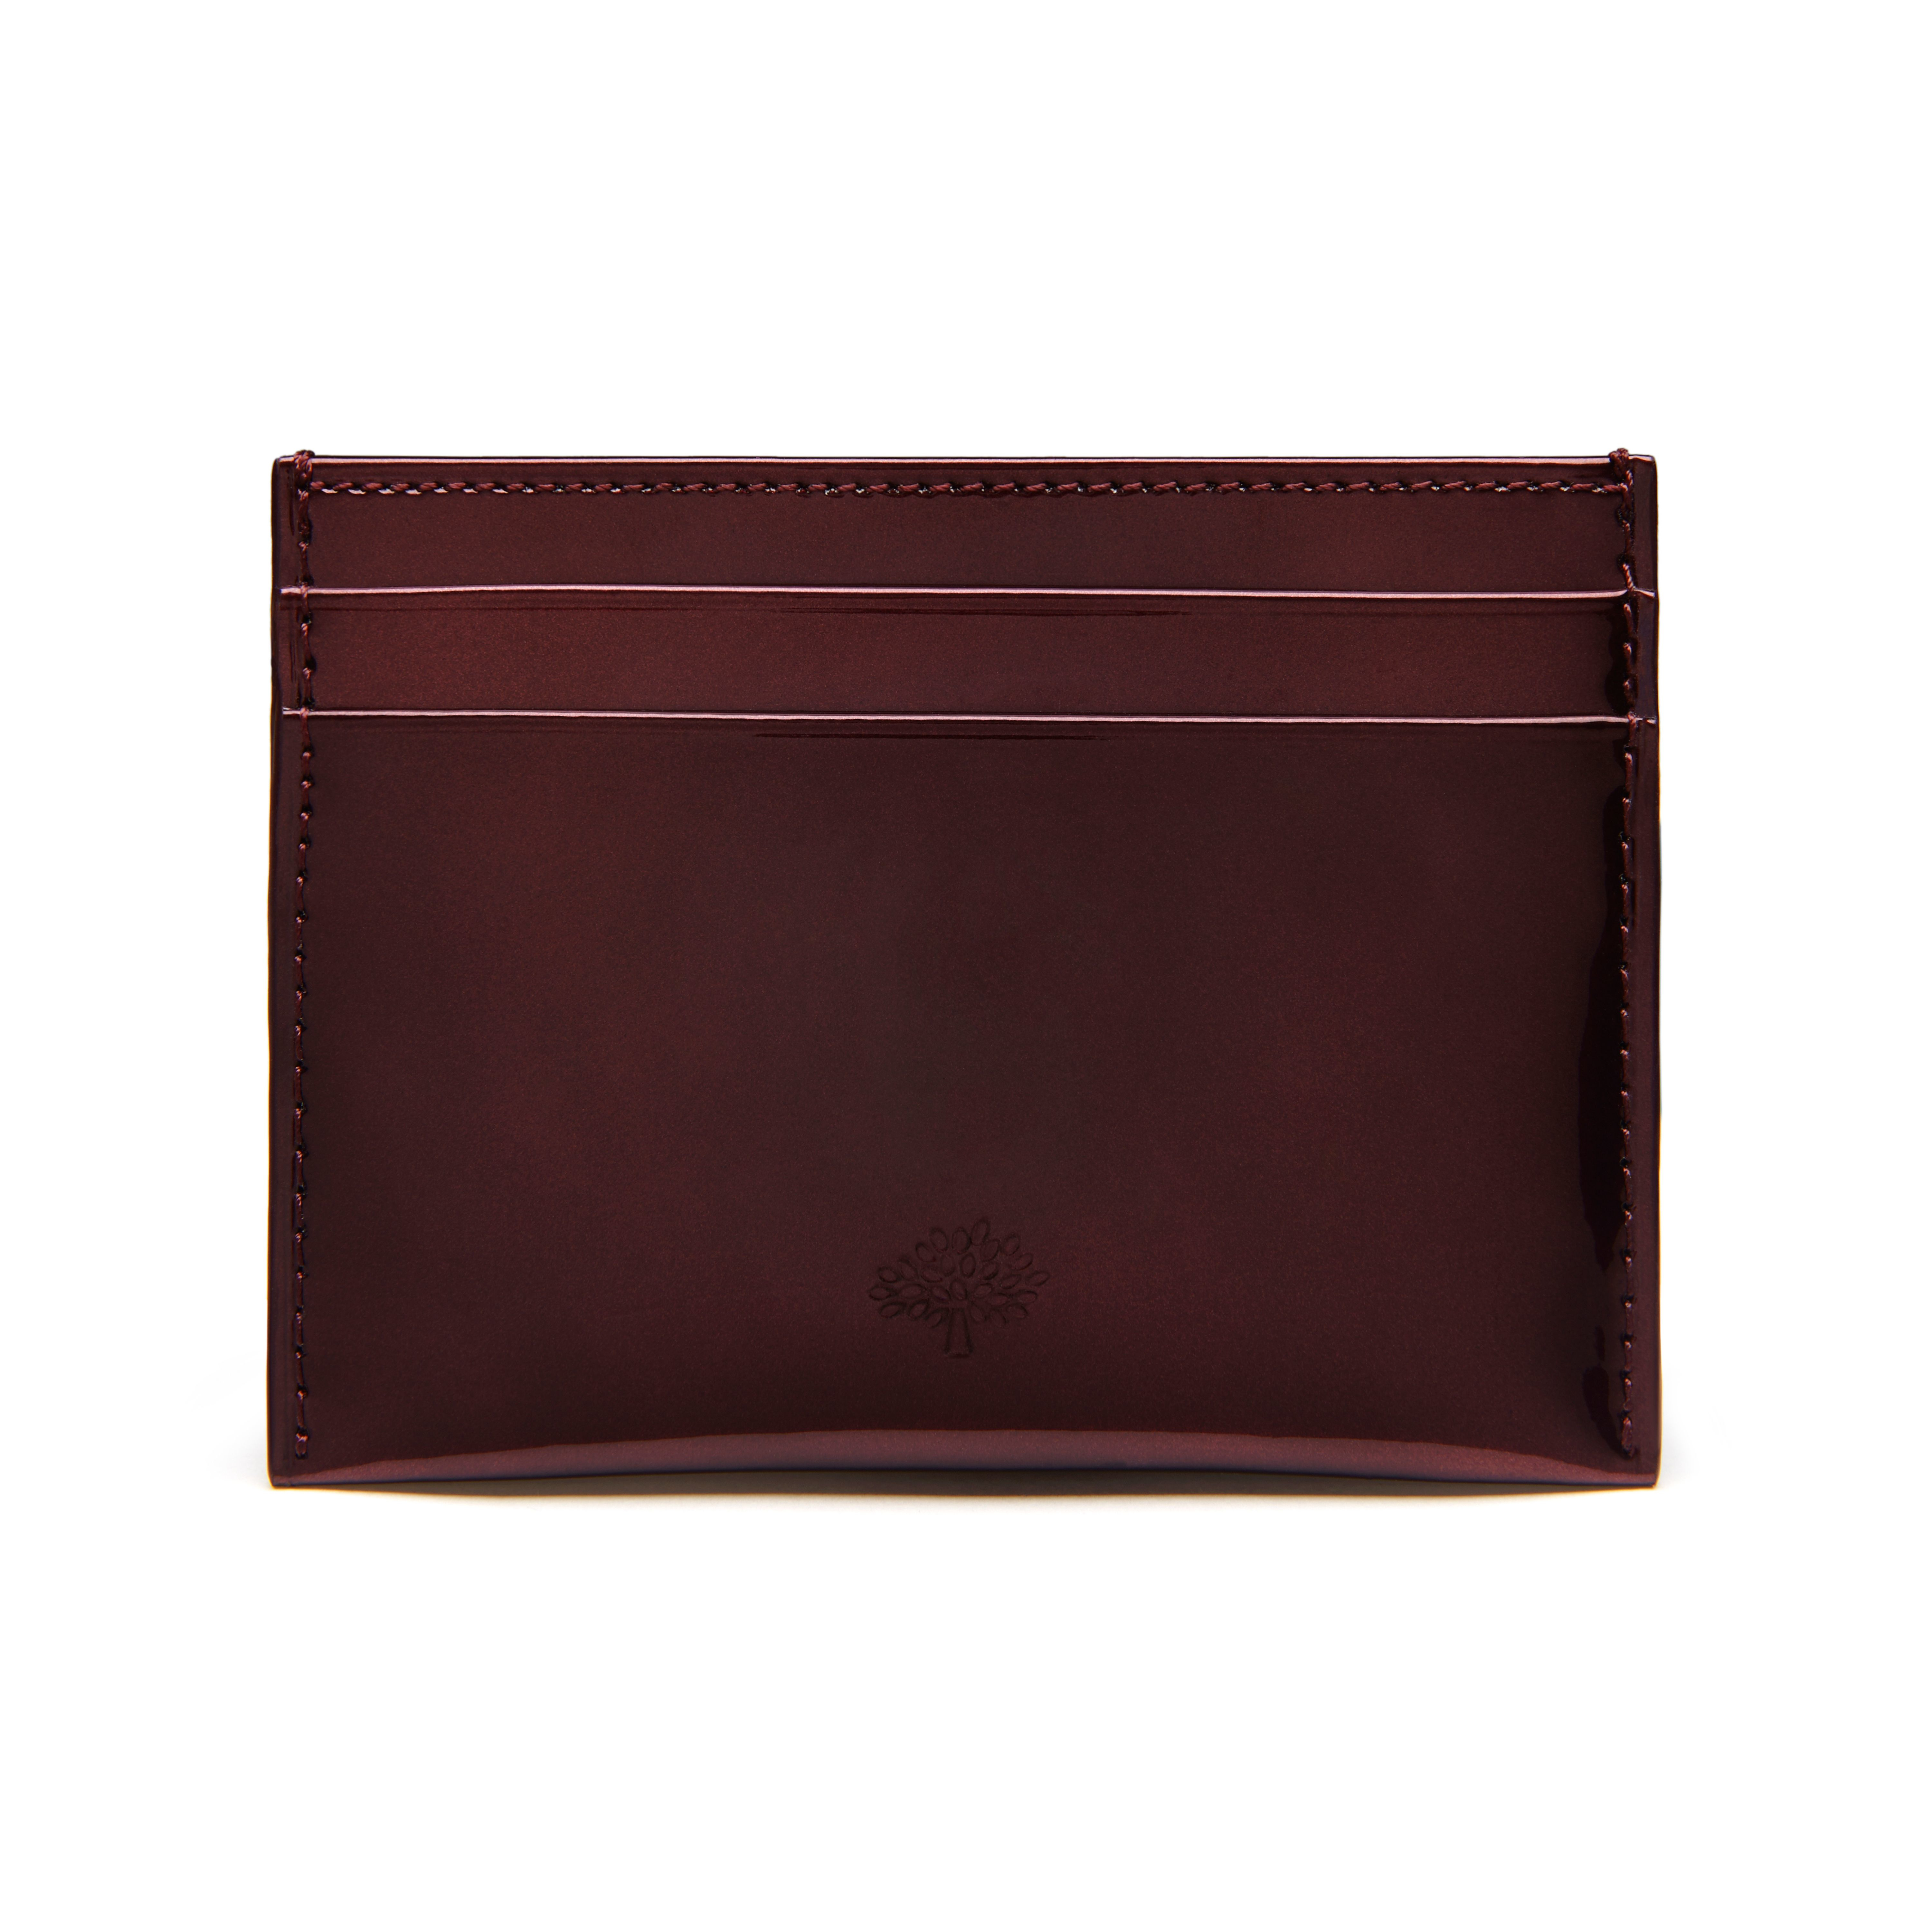 b7e78fce3b78 Mulberry Leather Mirror Card Holder in Purple - Lyst